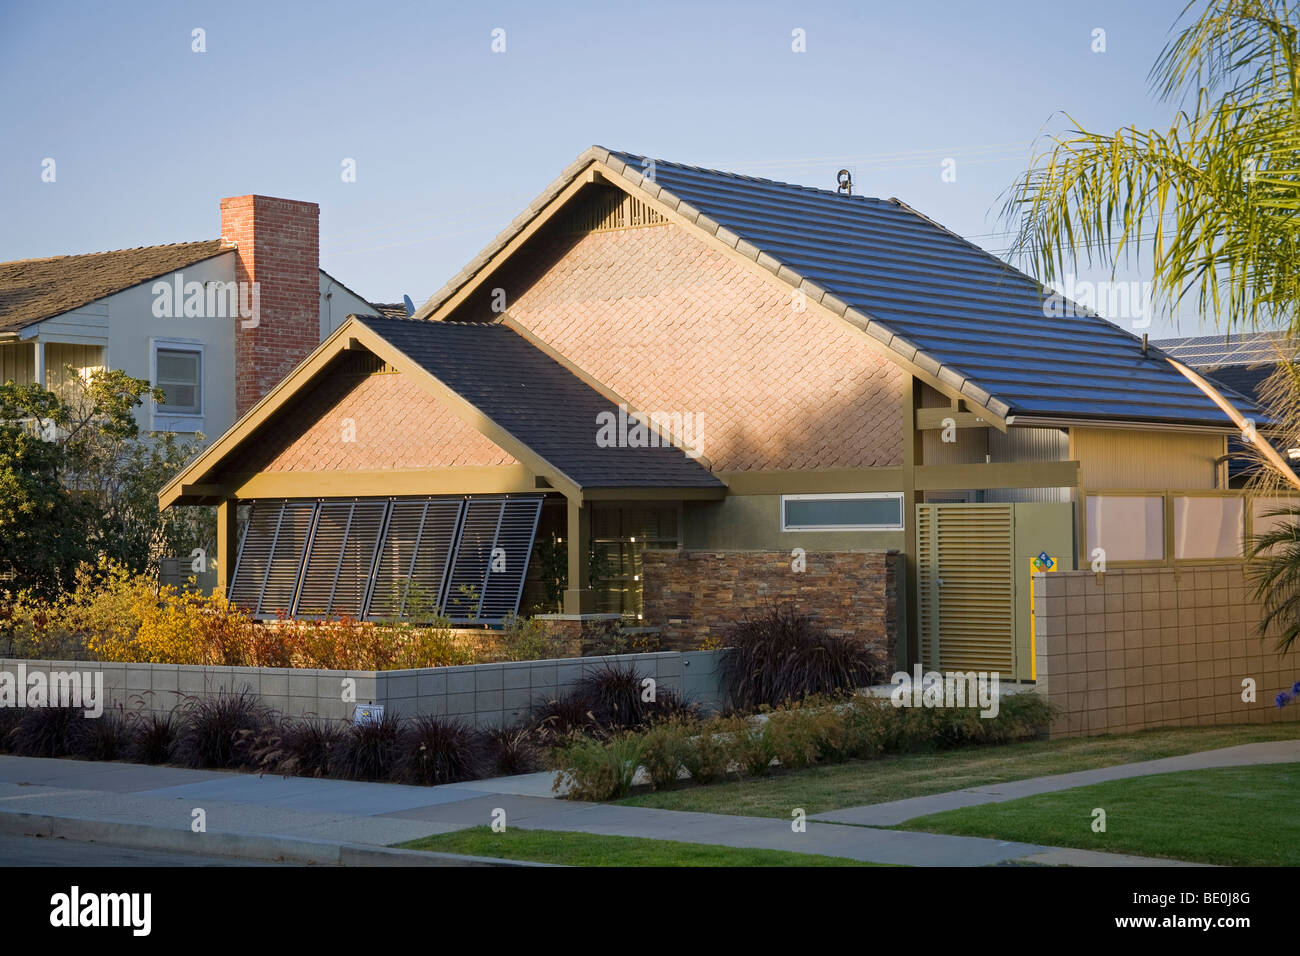 Green House in Long Beach retrofitted with Building Integrated Photovoltaics (BIPV) Modules, California, USA - Stock Image